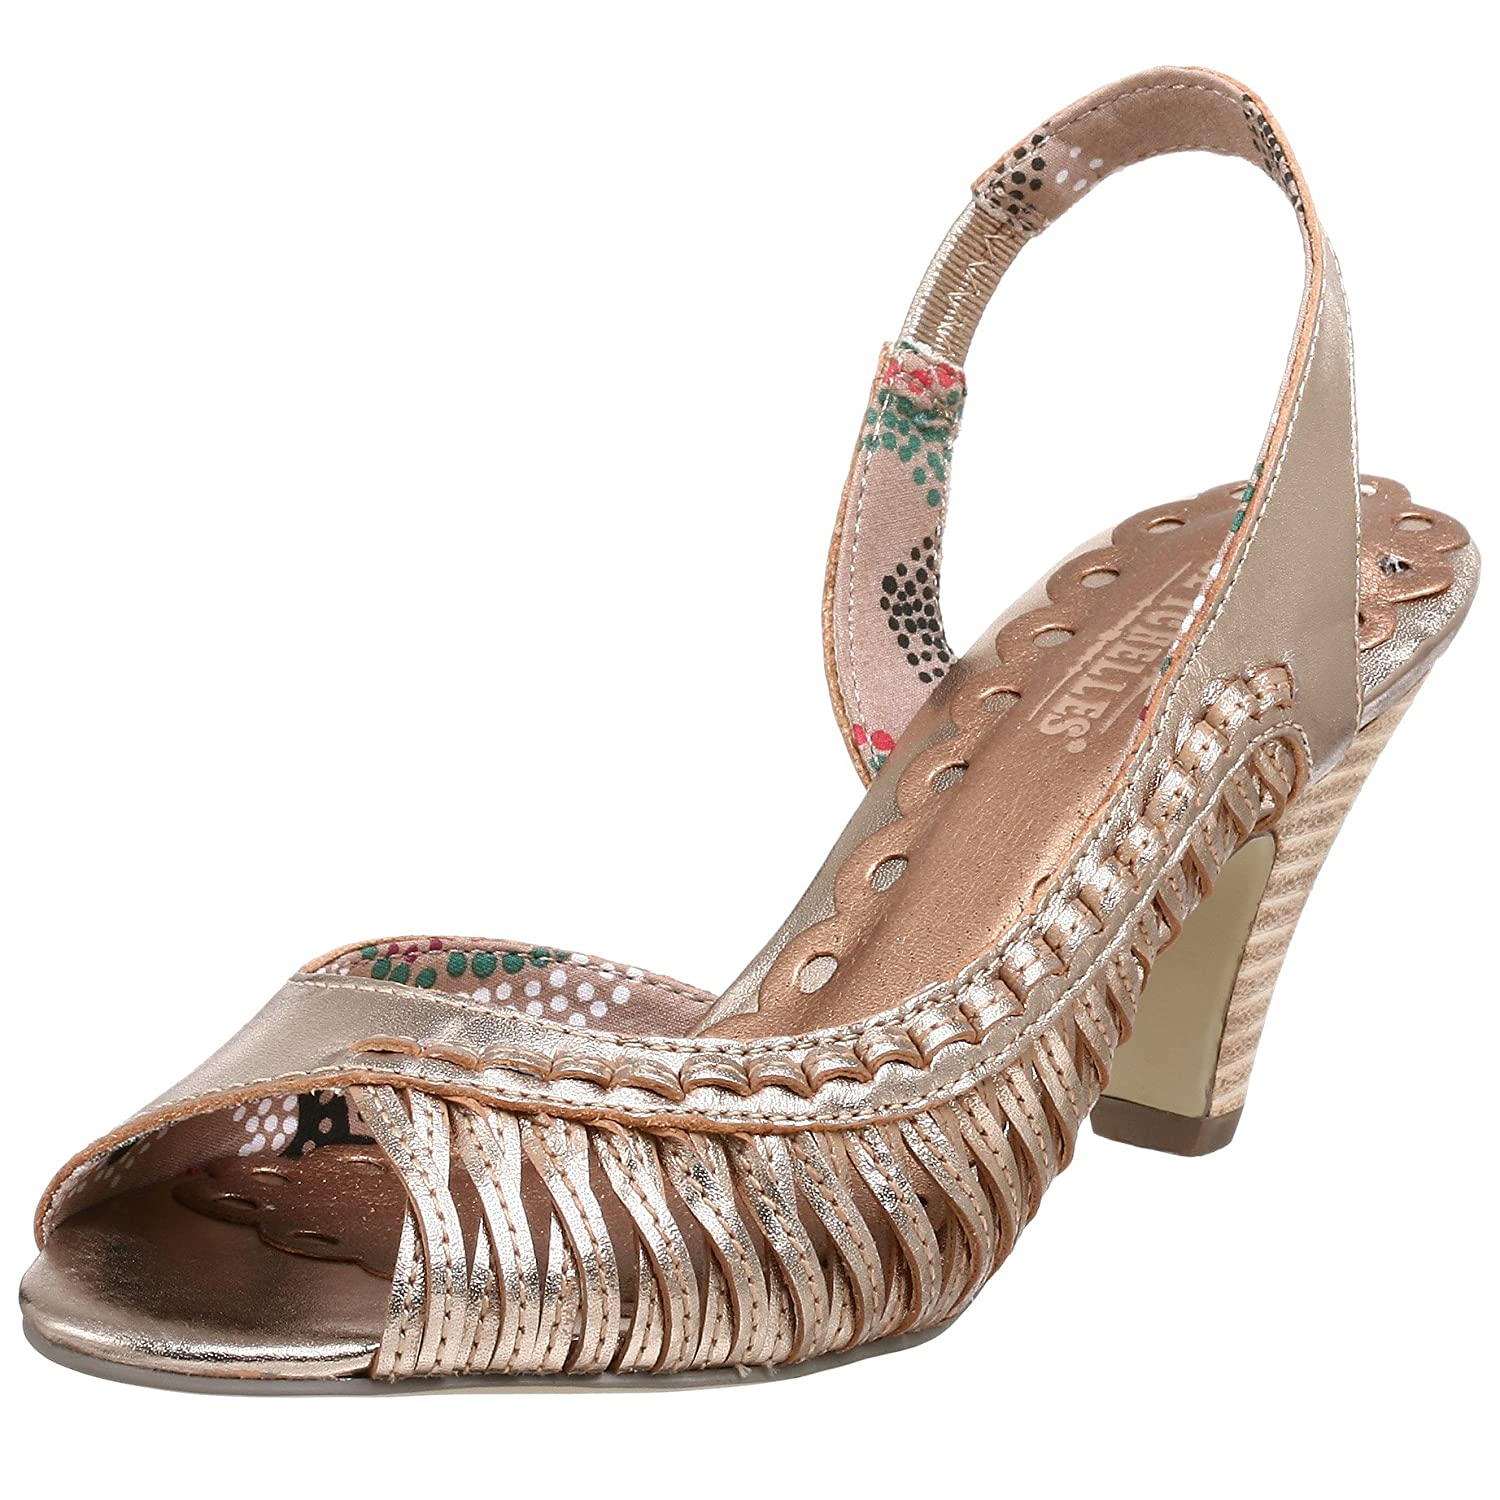 Seychelles Shanti Slingback - Free Overnight Shipping & Return Shipping: Endless.com :  sling back designer sandals shoe